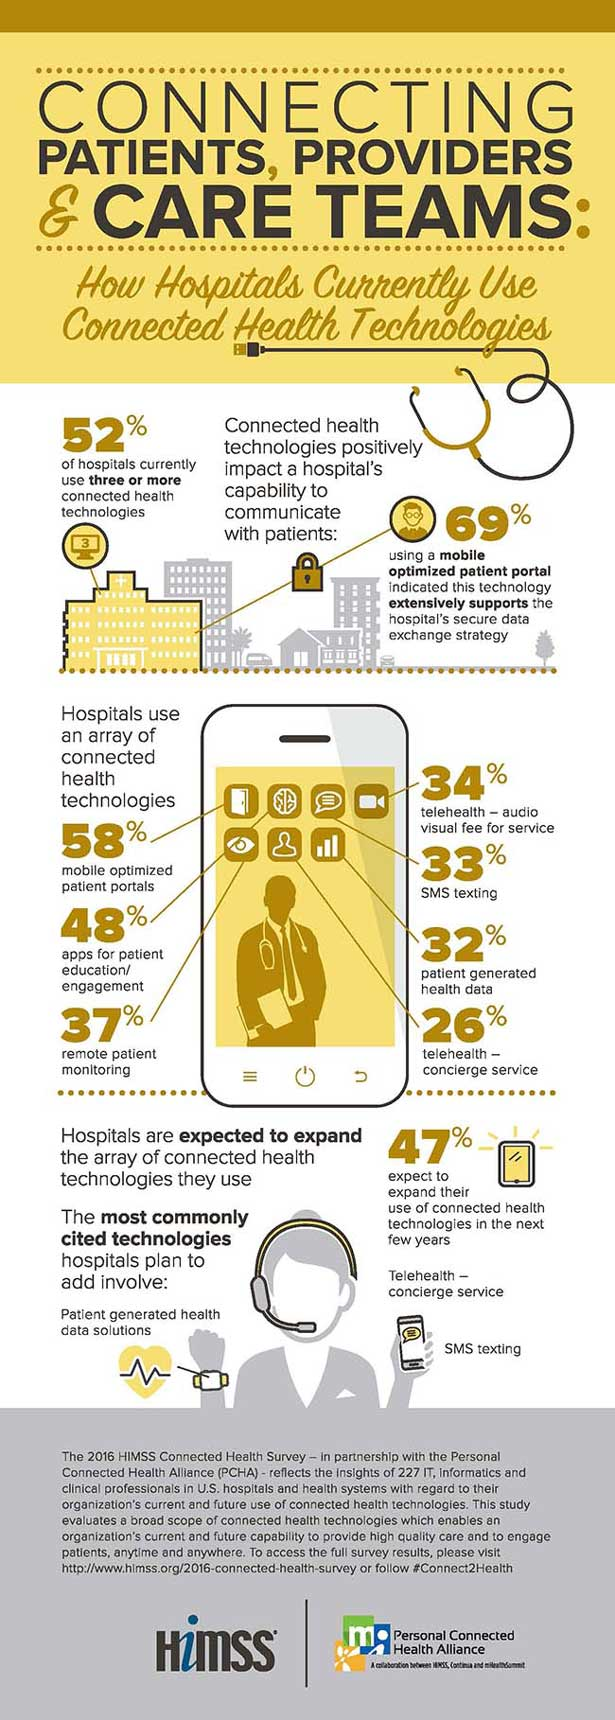 connected-health-technologies-survey-2016-hospital-wireless-networks.jpg